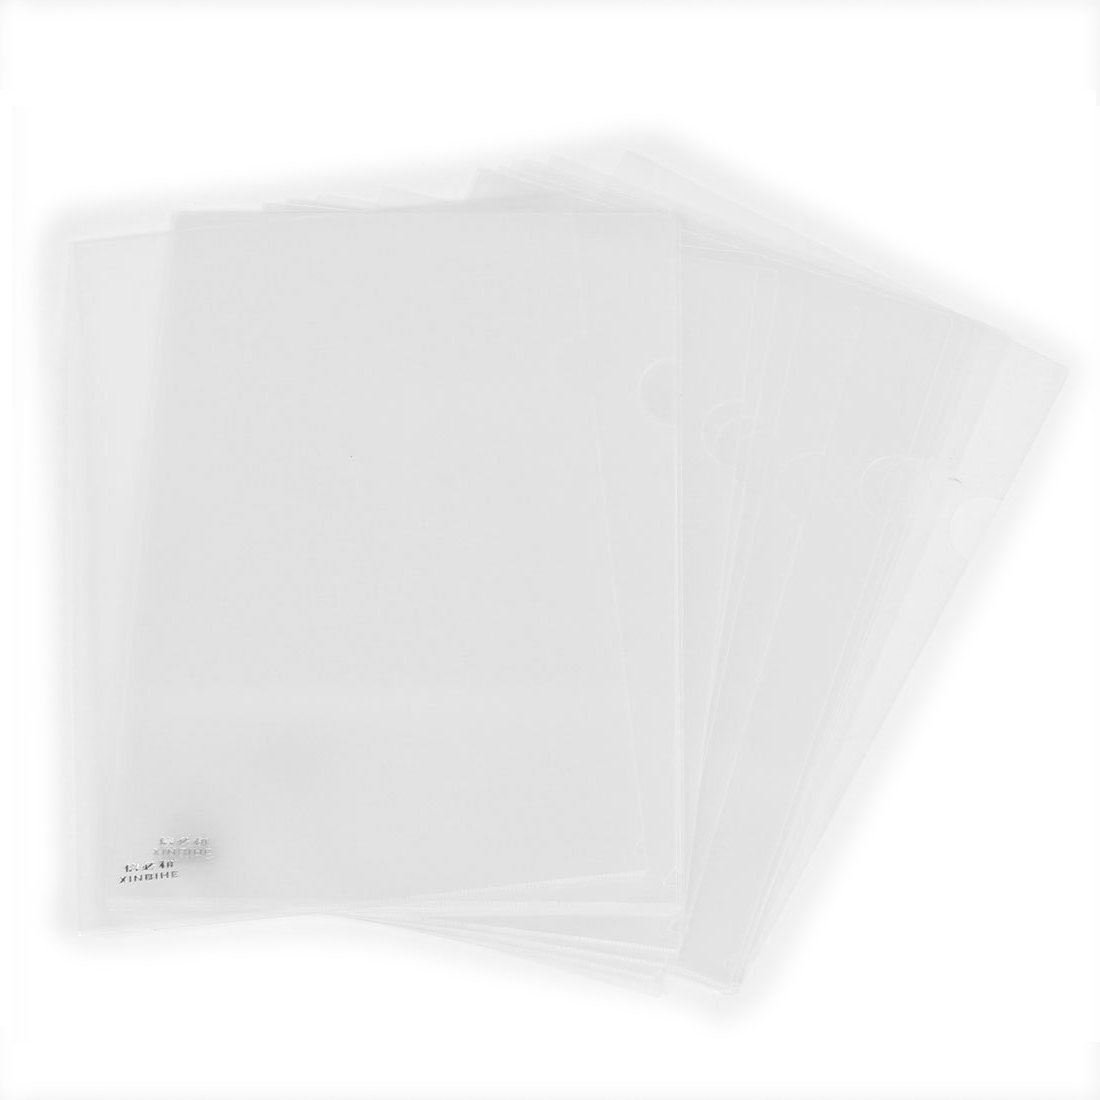 100 new reuseable clear file folder holder for a4 paper document 20 pcschina a4 paper file folder